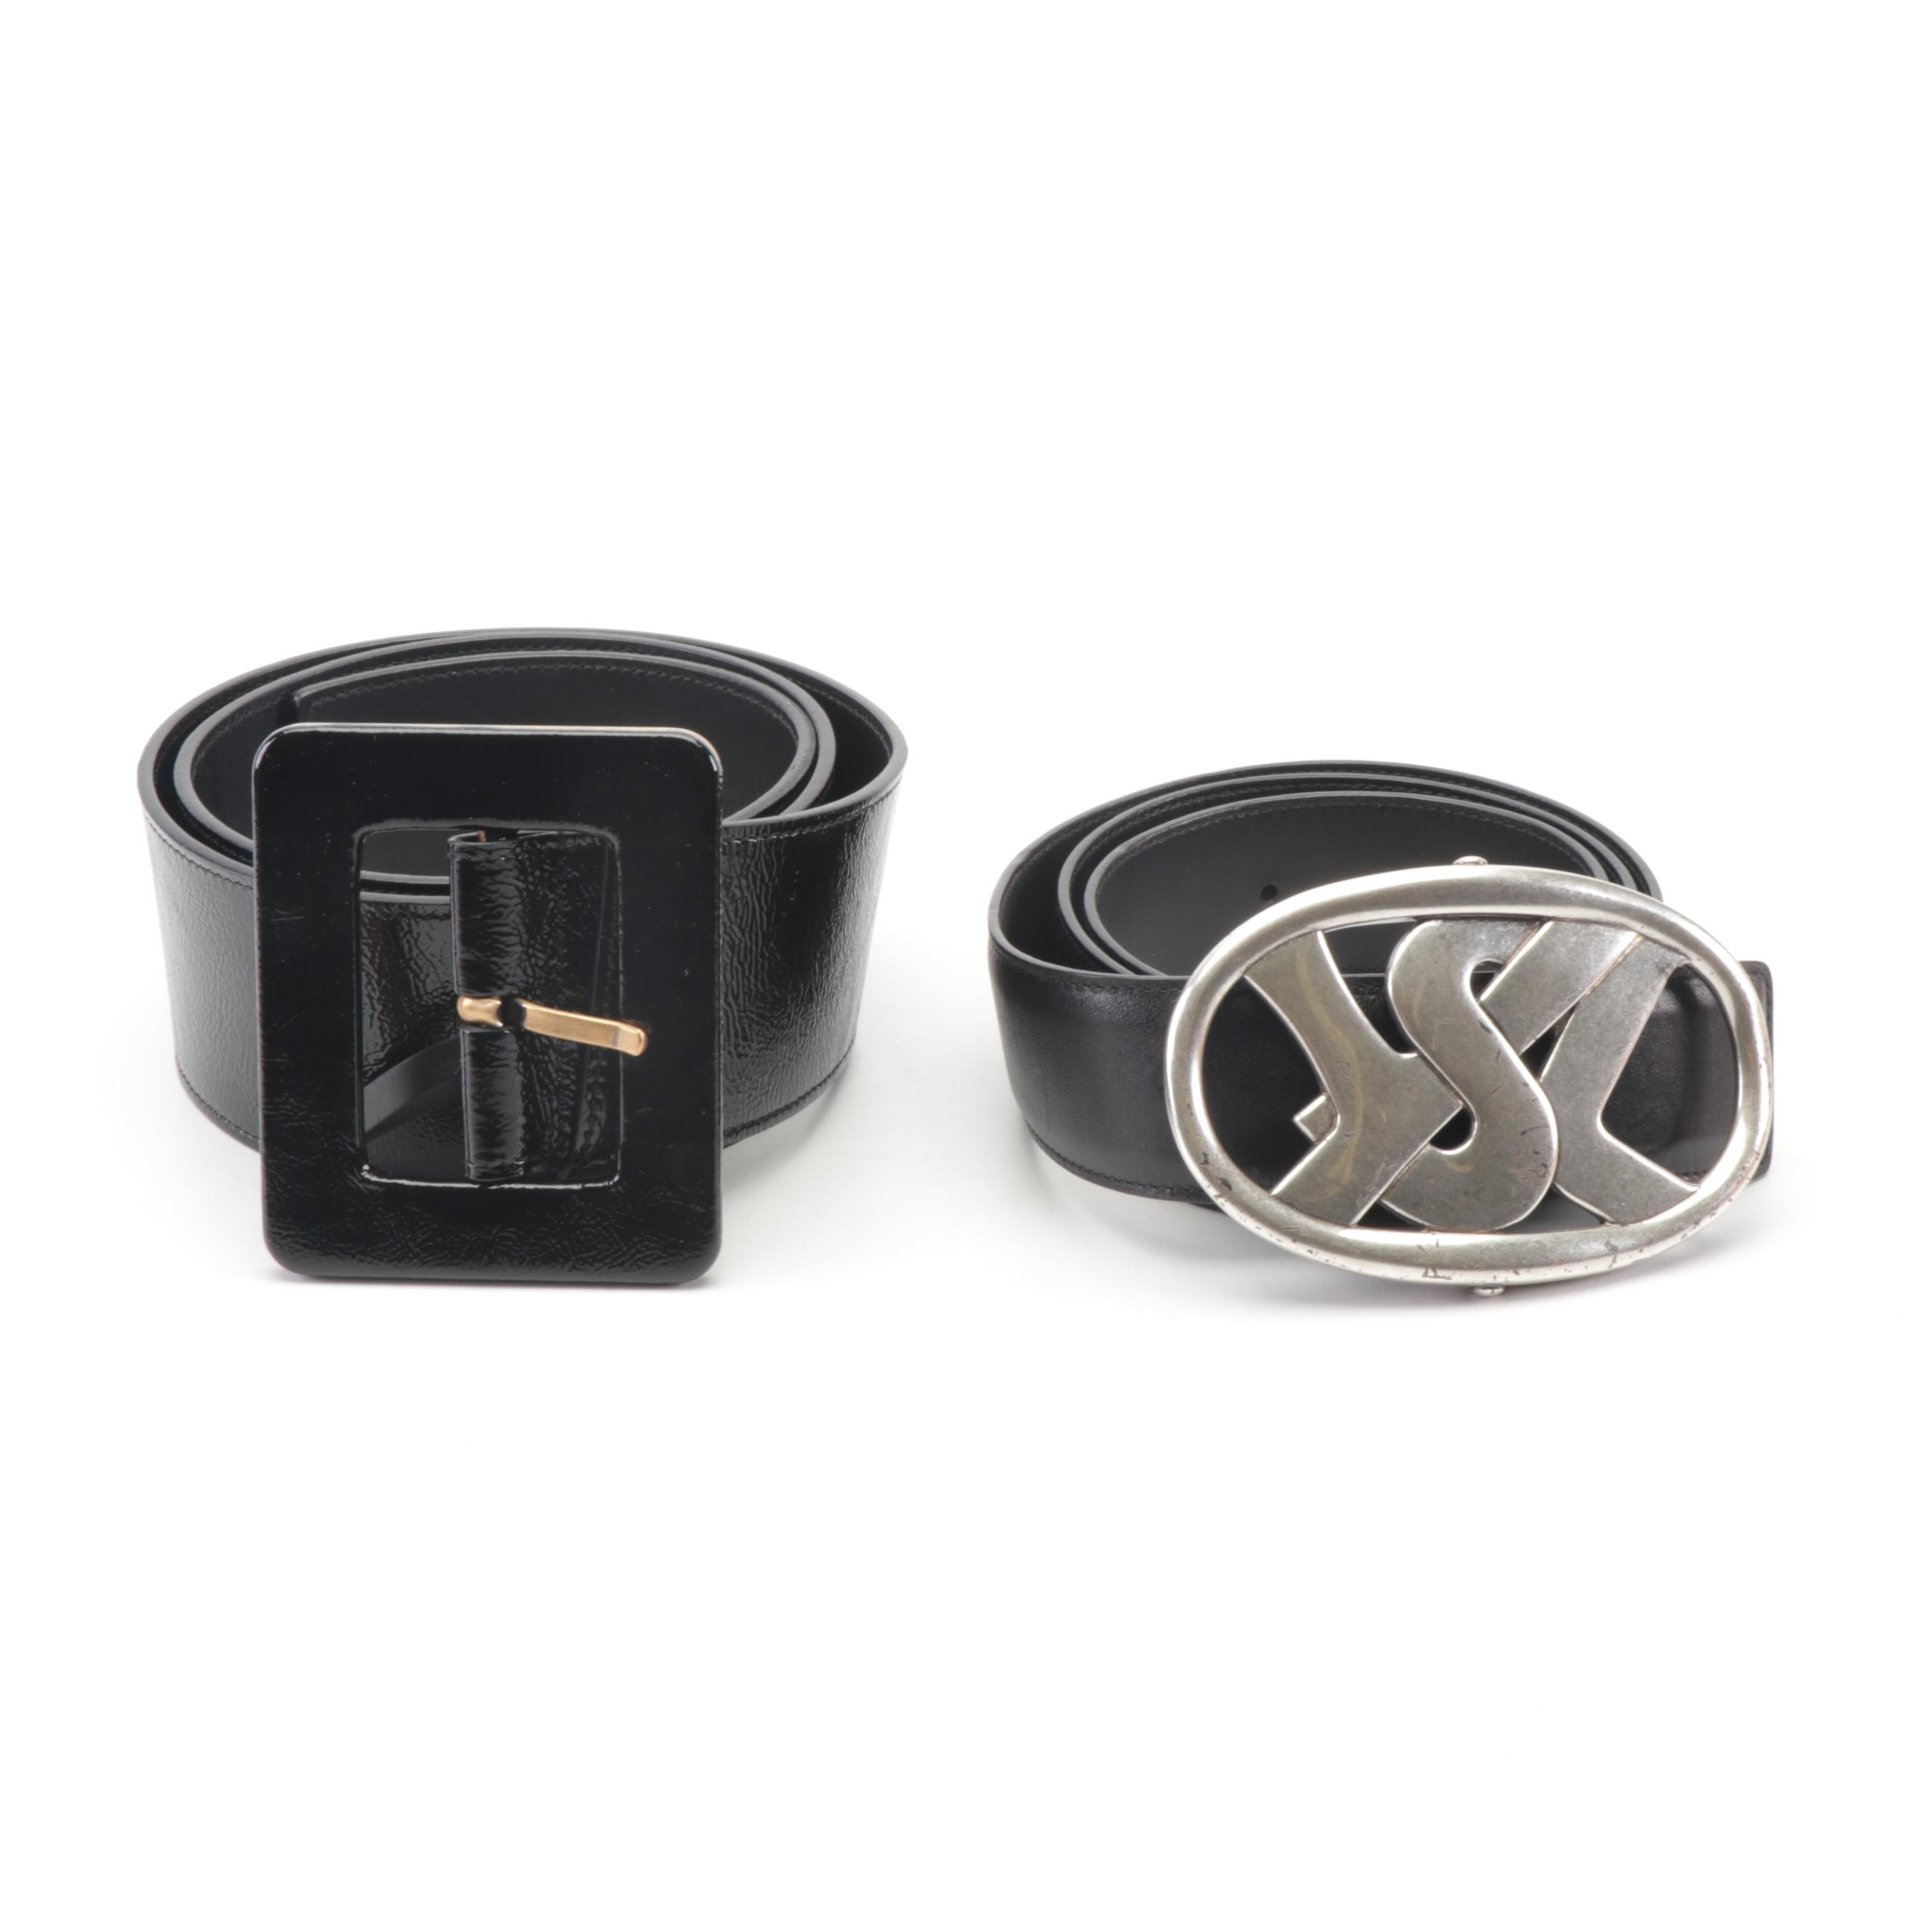 Yves Saint Laurent Black Leather Belts Featuring YSL Silver Tone Buckle